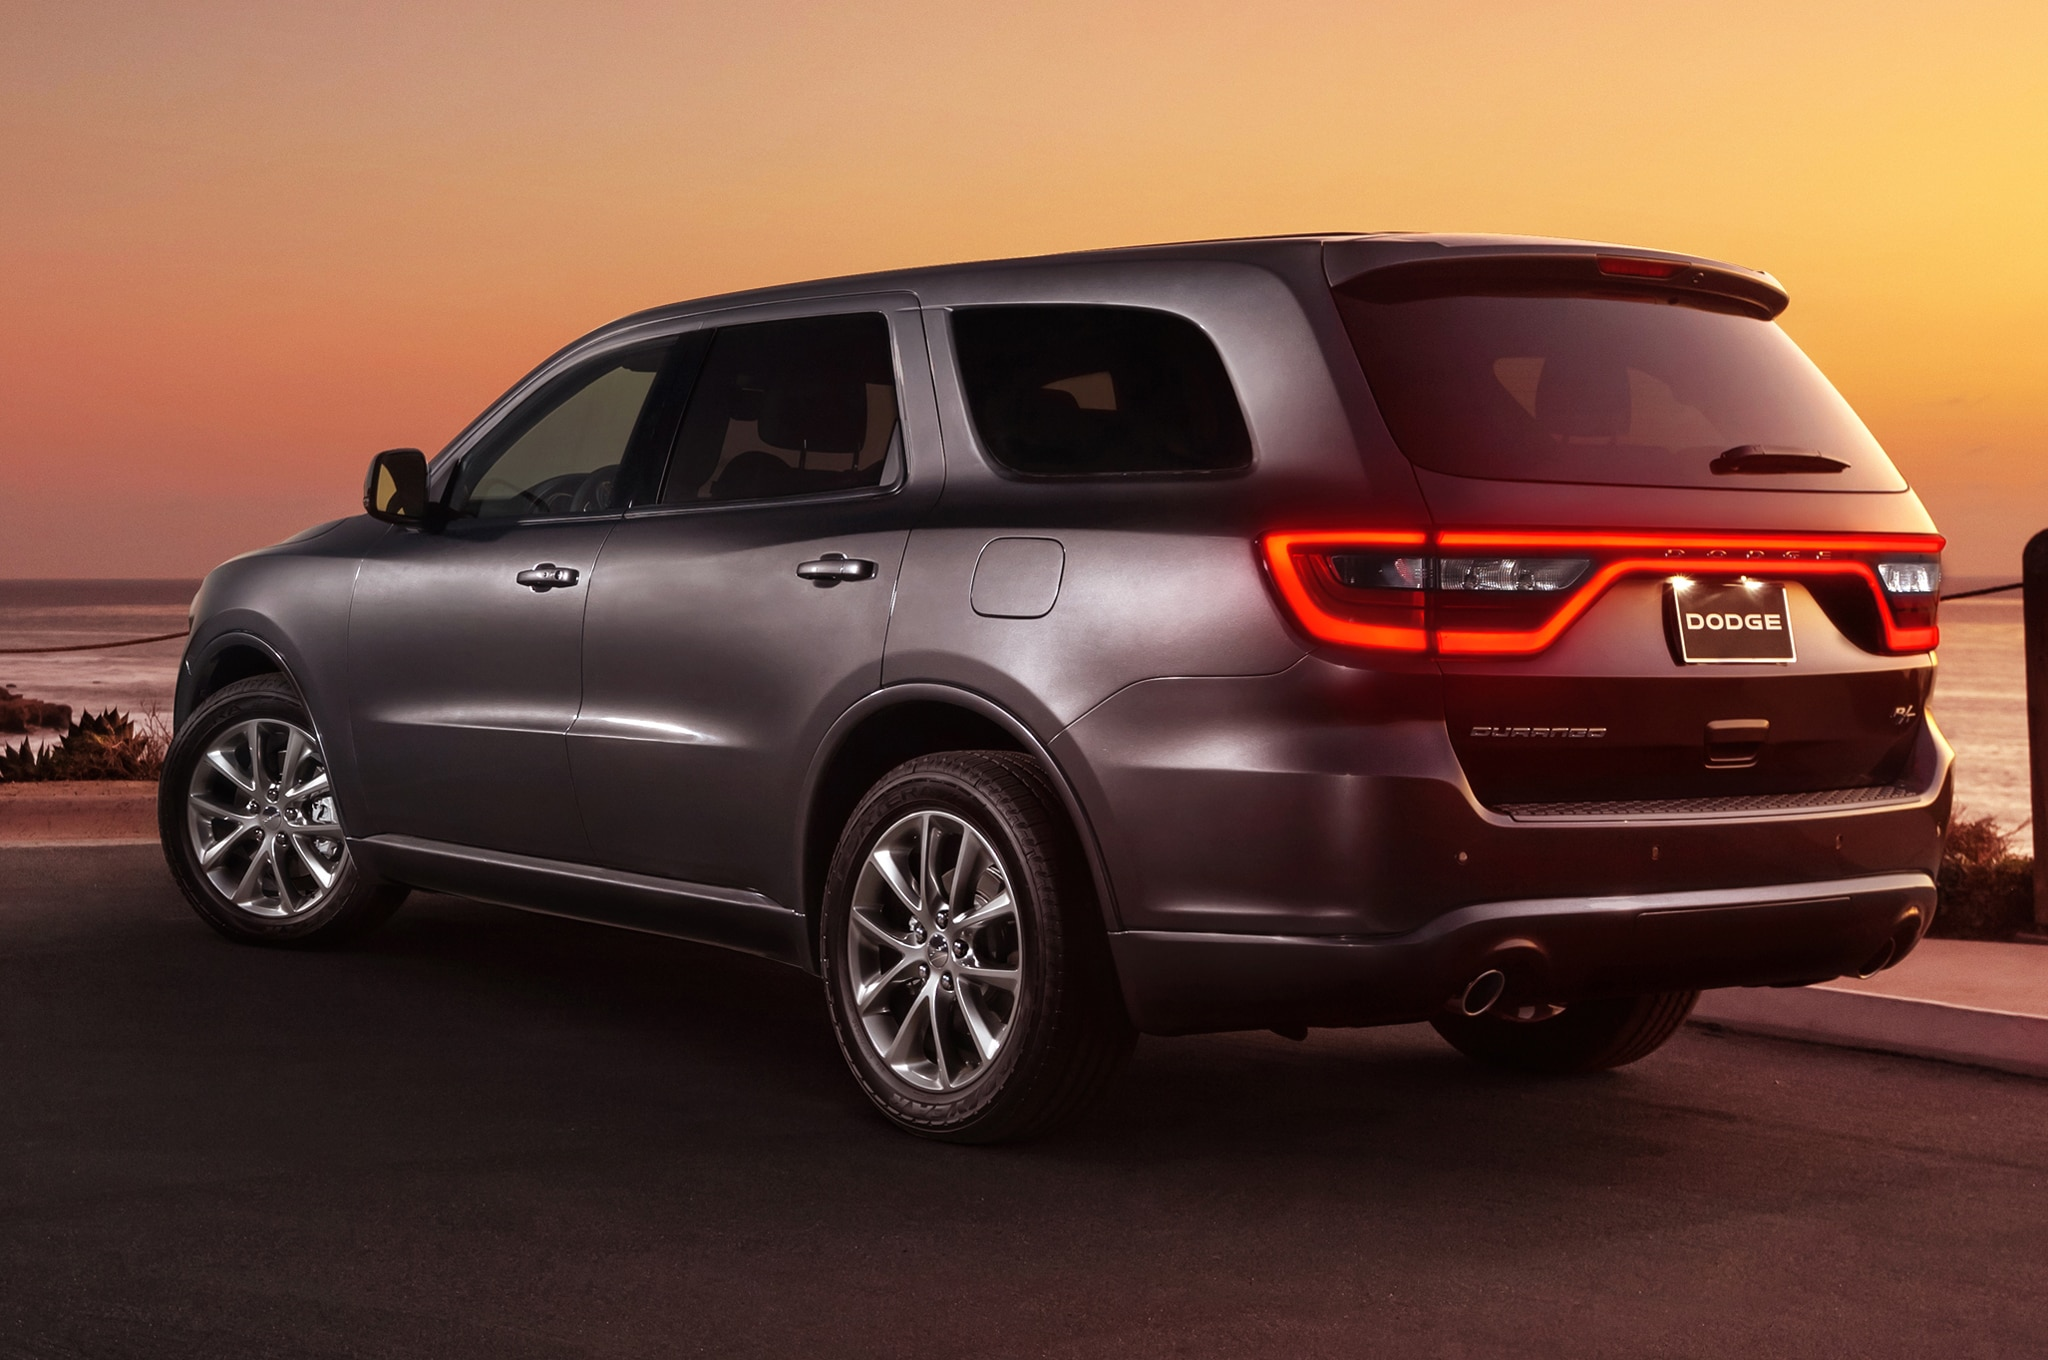 2014 Dodge Durango Rear 21